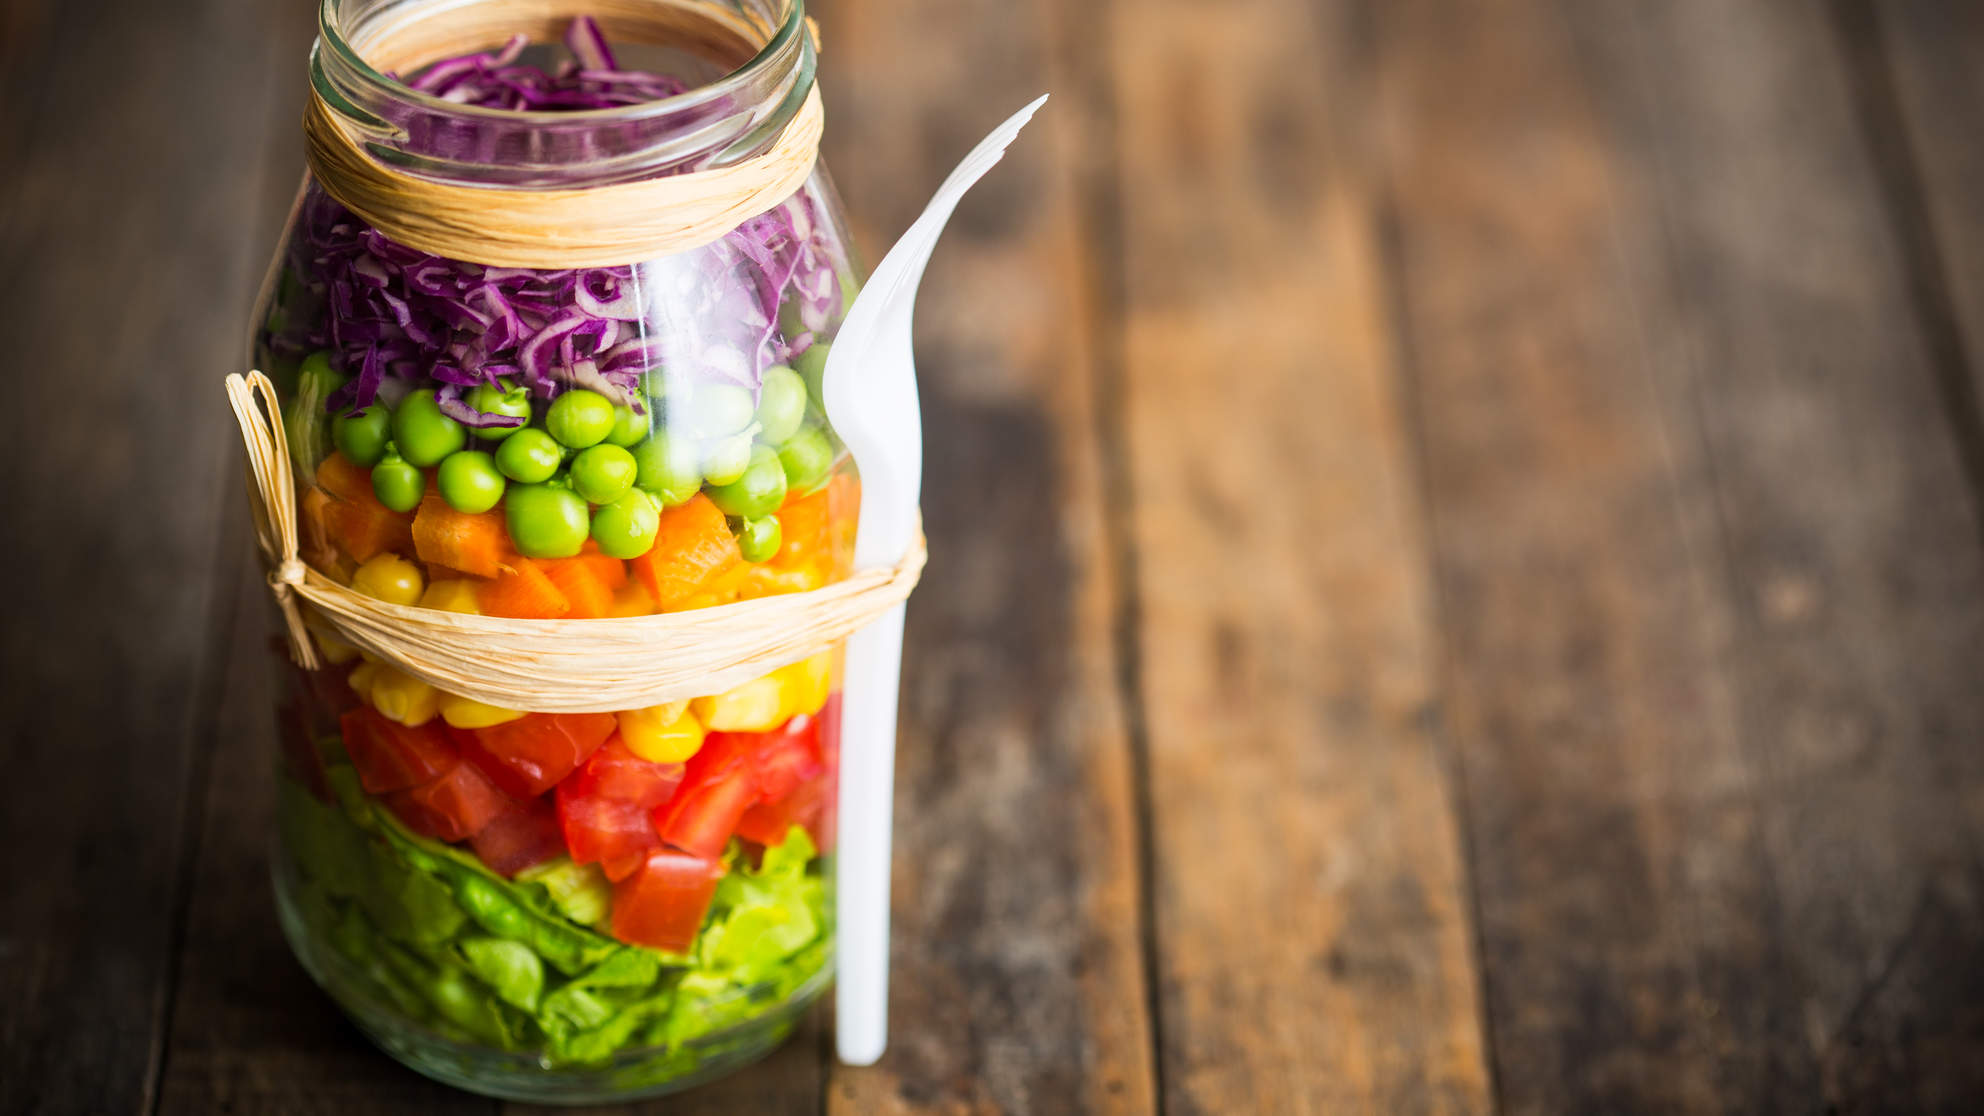 Here's What to Eat for Lunch If You're Trying to Slim Down, According to a Nutritionist